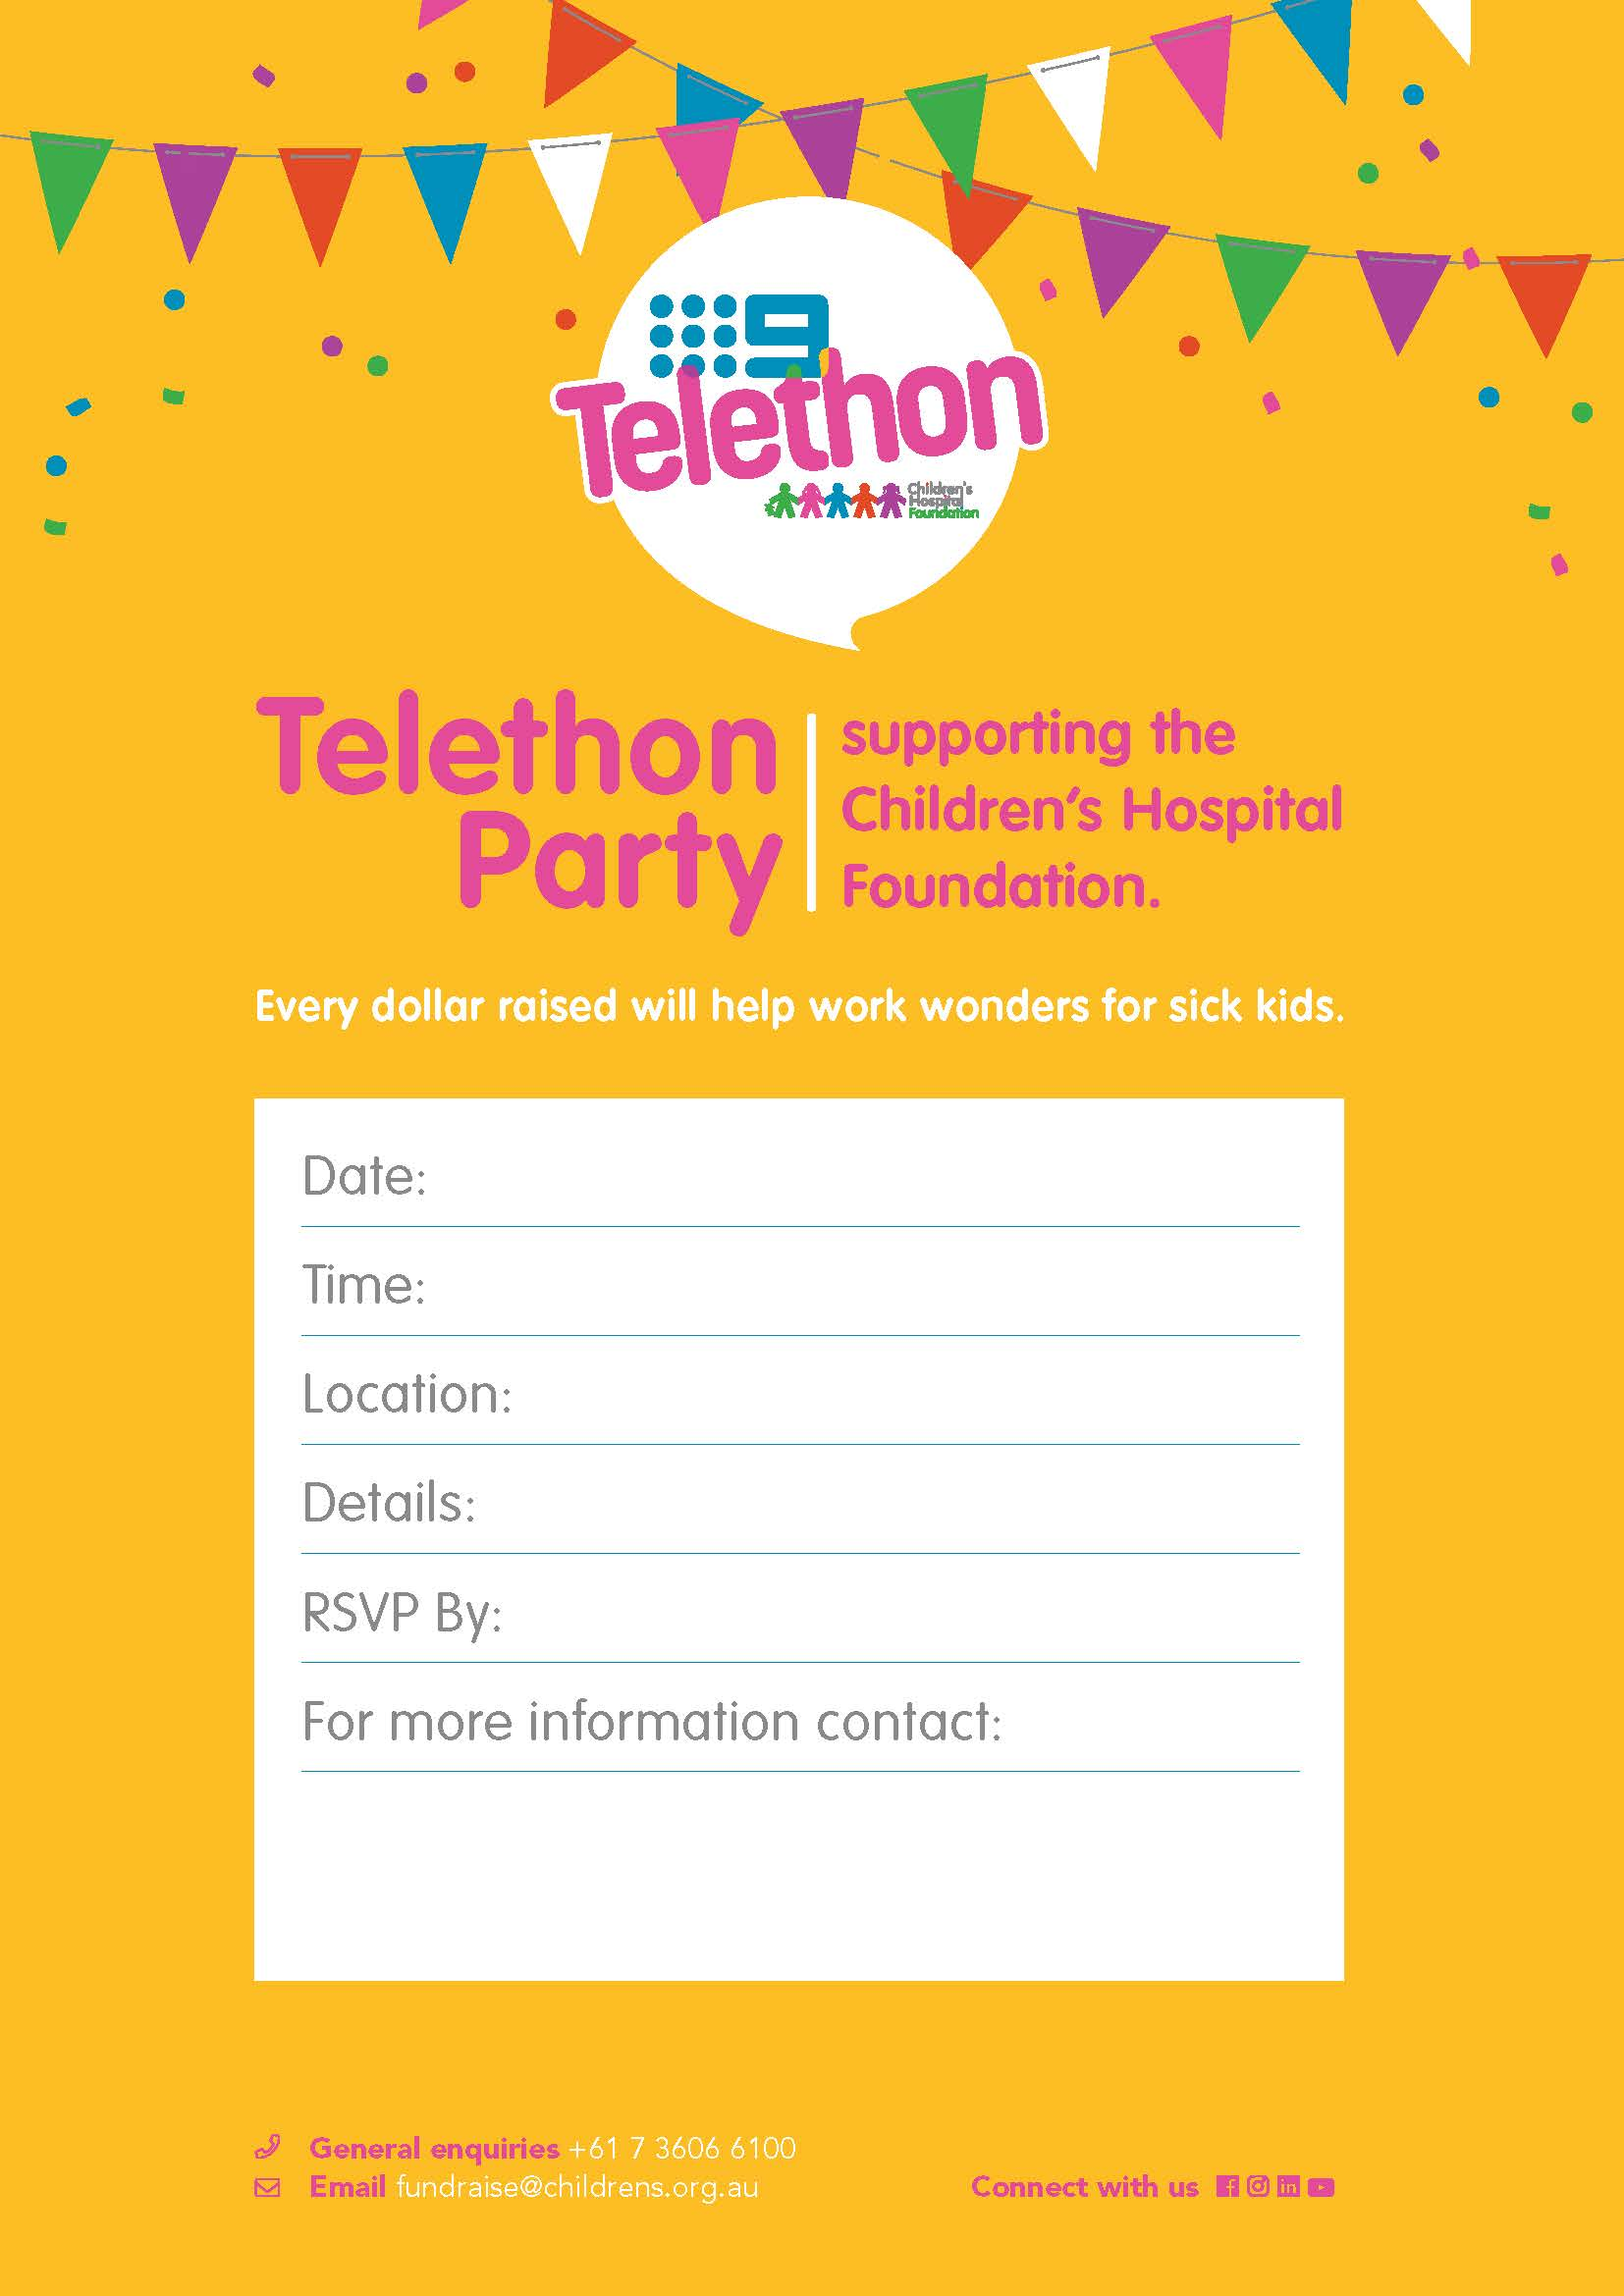 Telethon Party Promotion Invitation Poster 1